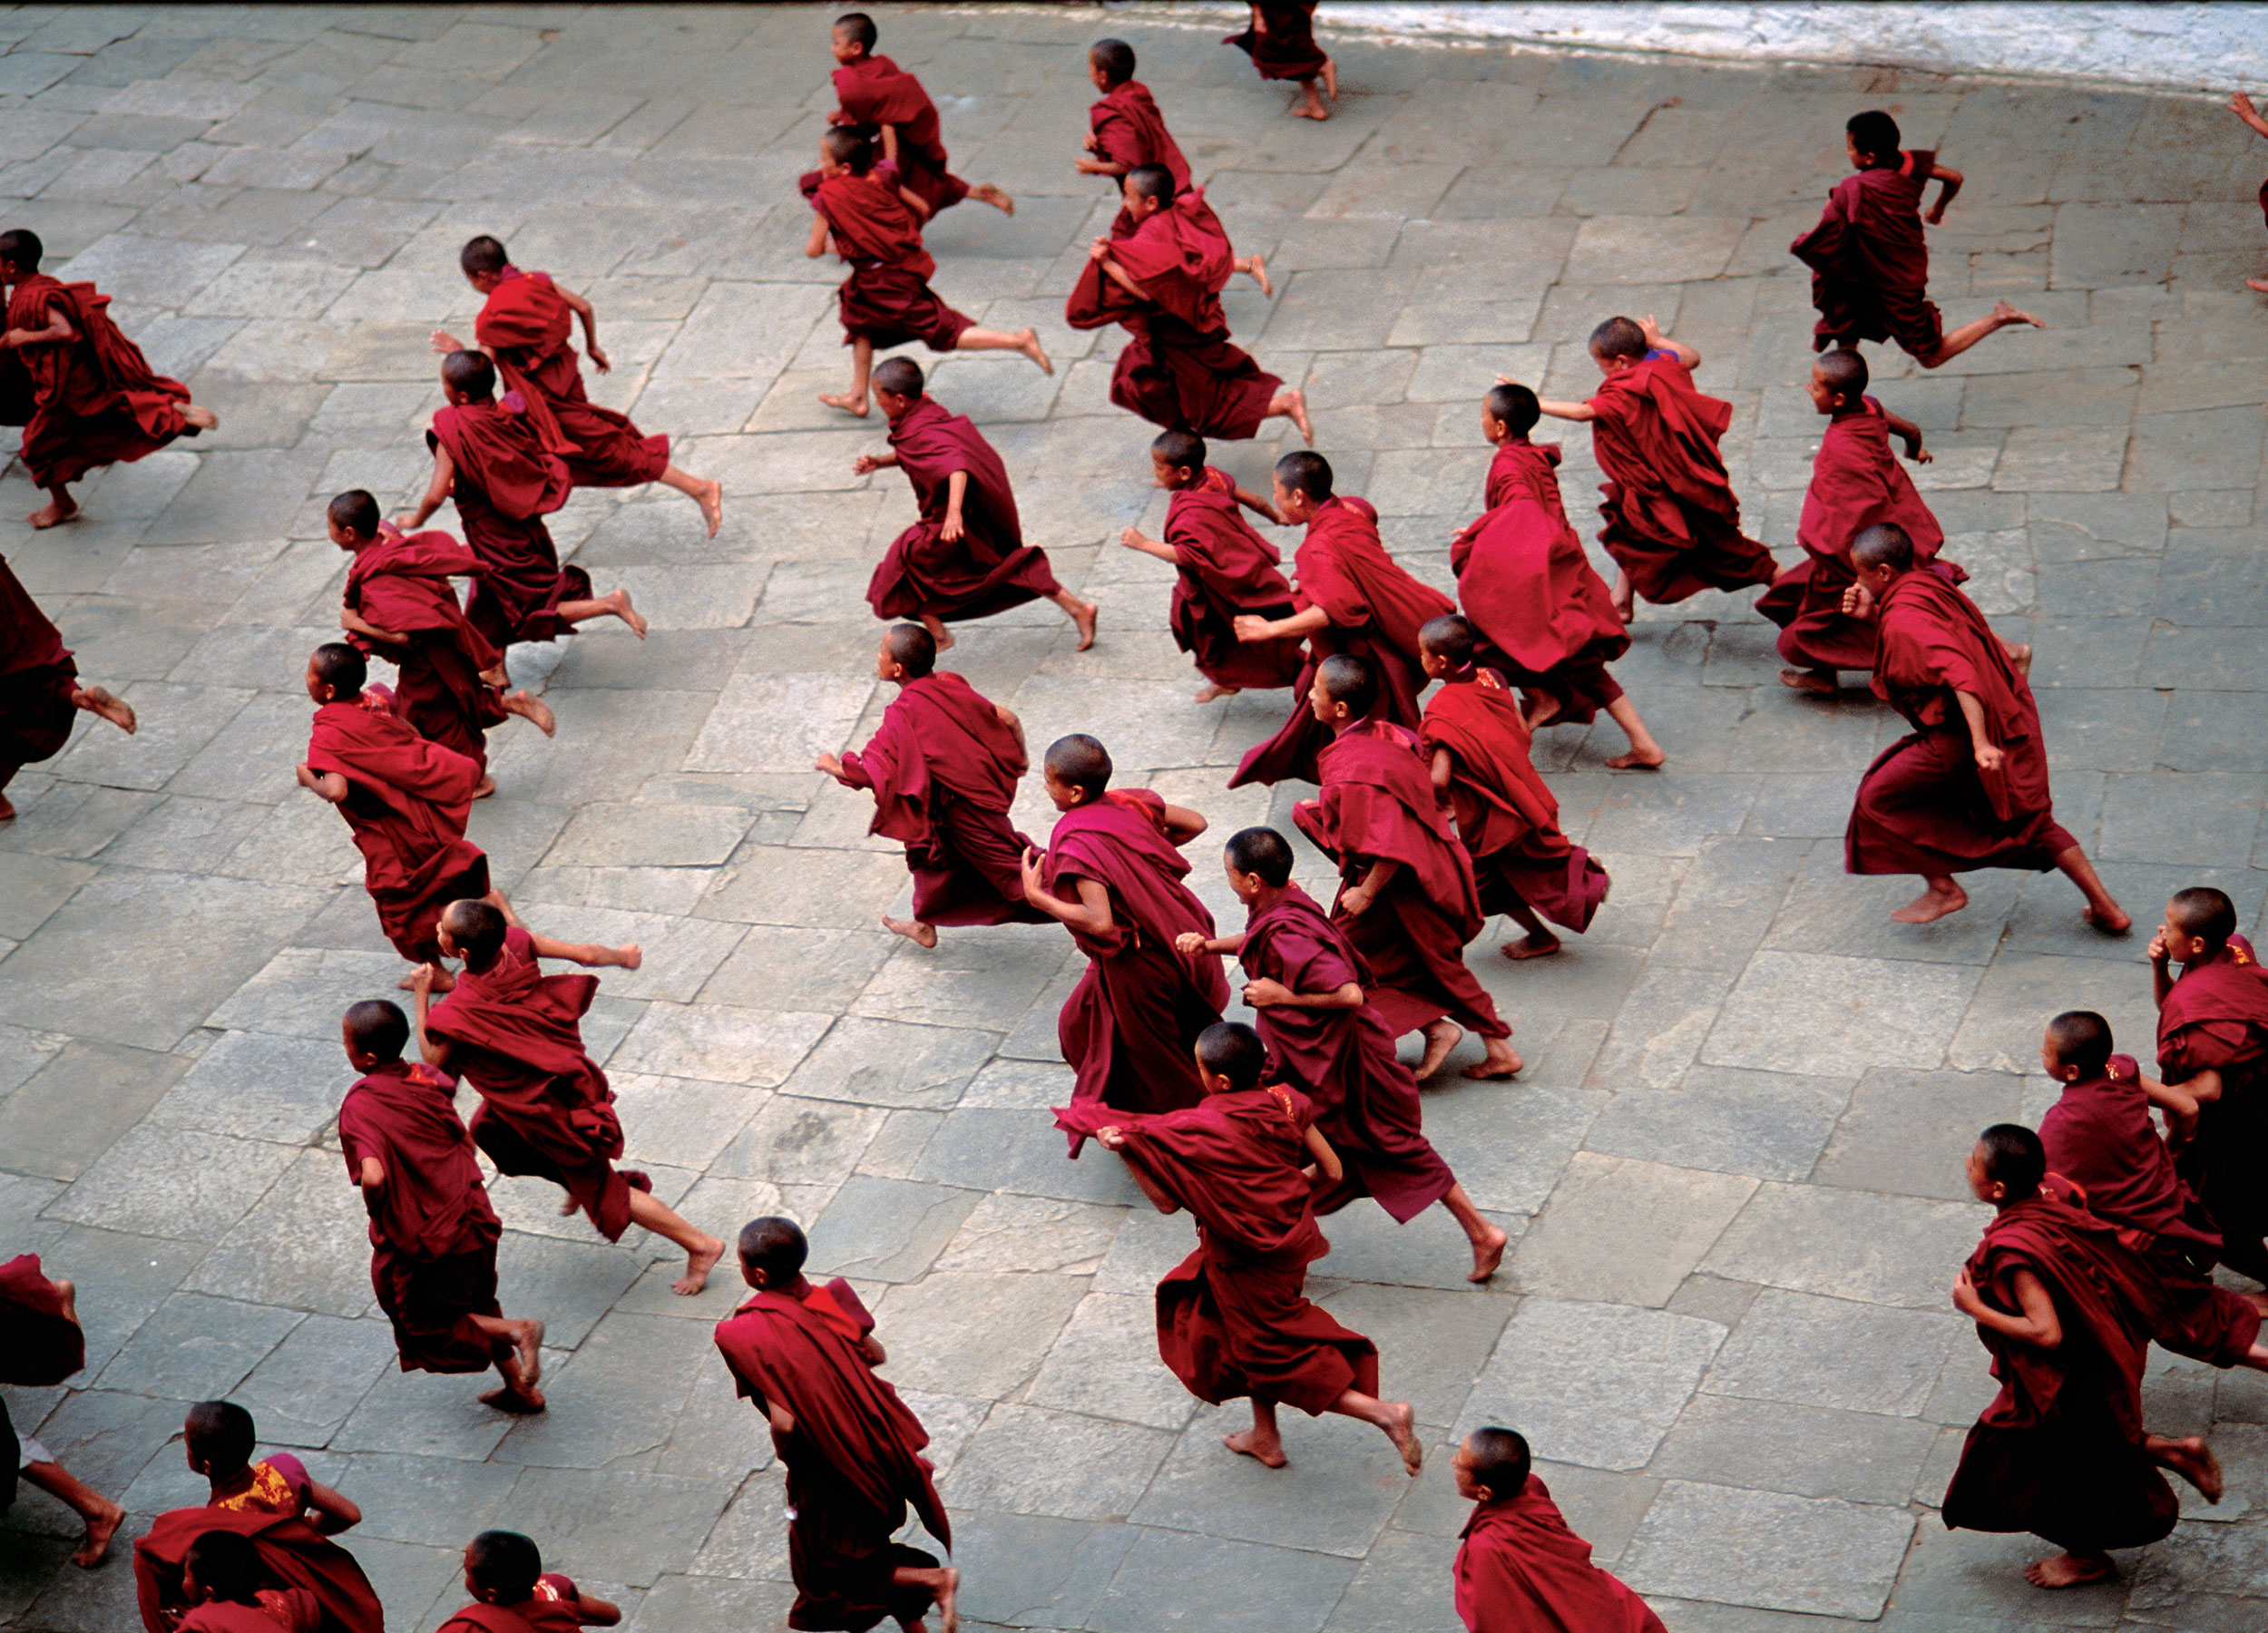 A group of red-robed monks running down a stone pavement